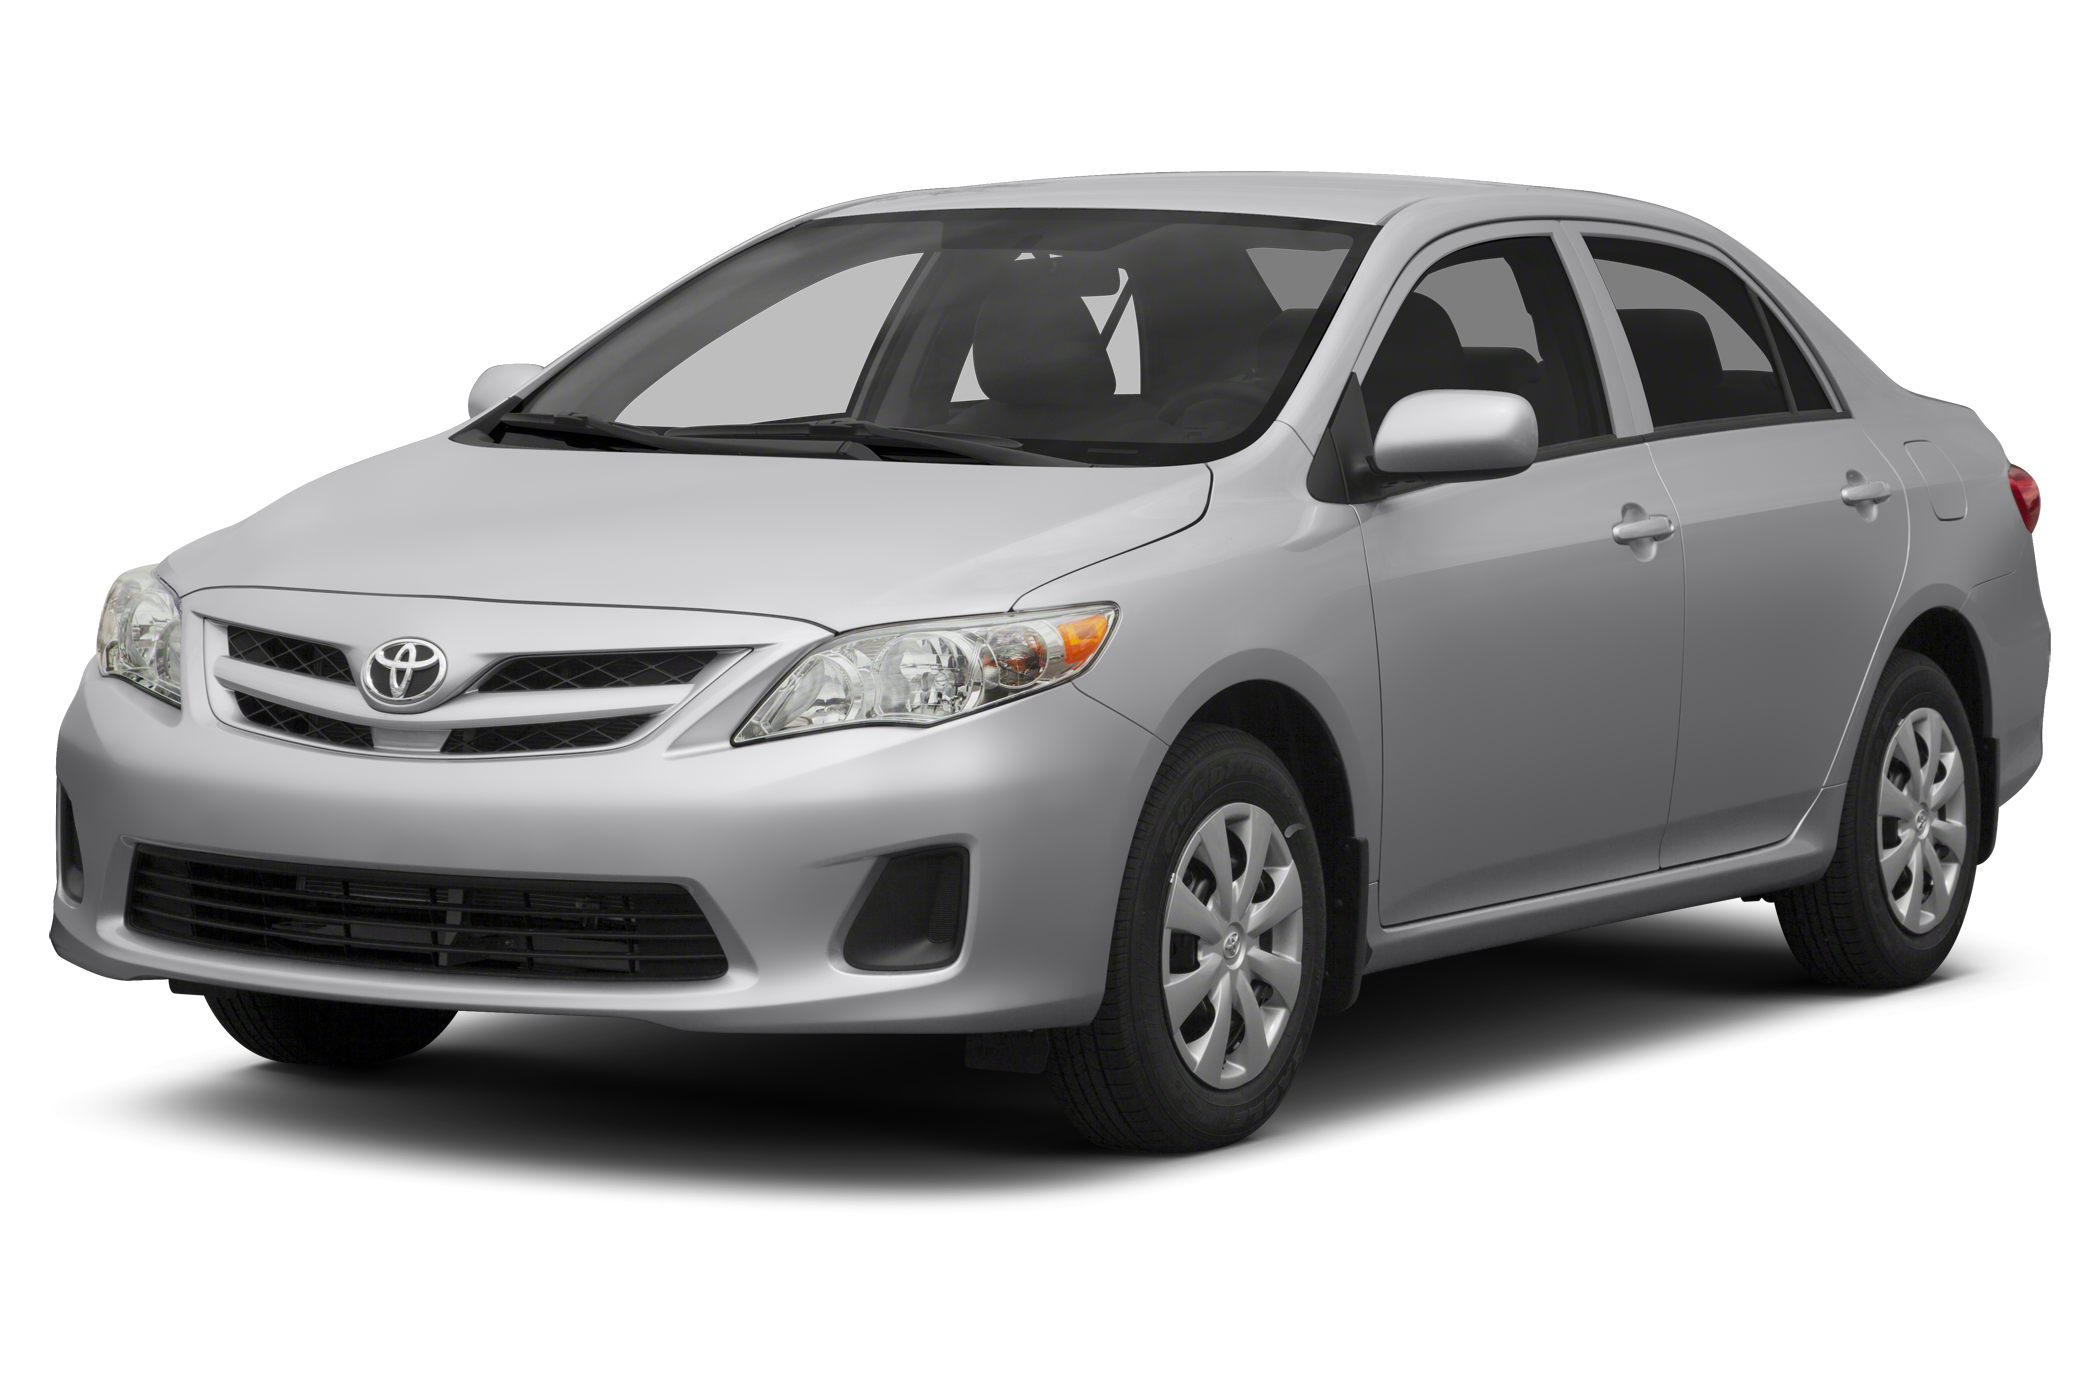 2012 Toyota Corolla LE LE trim BLACK SAND PEARL exterior and ASH interior LOW MILES - 22825 FU